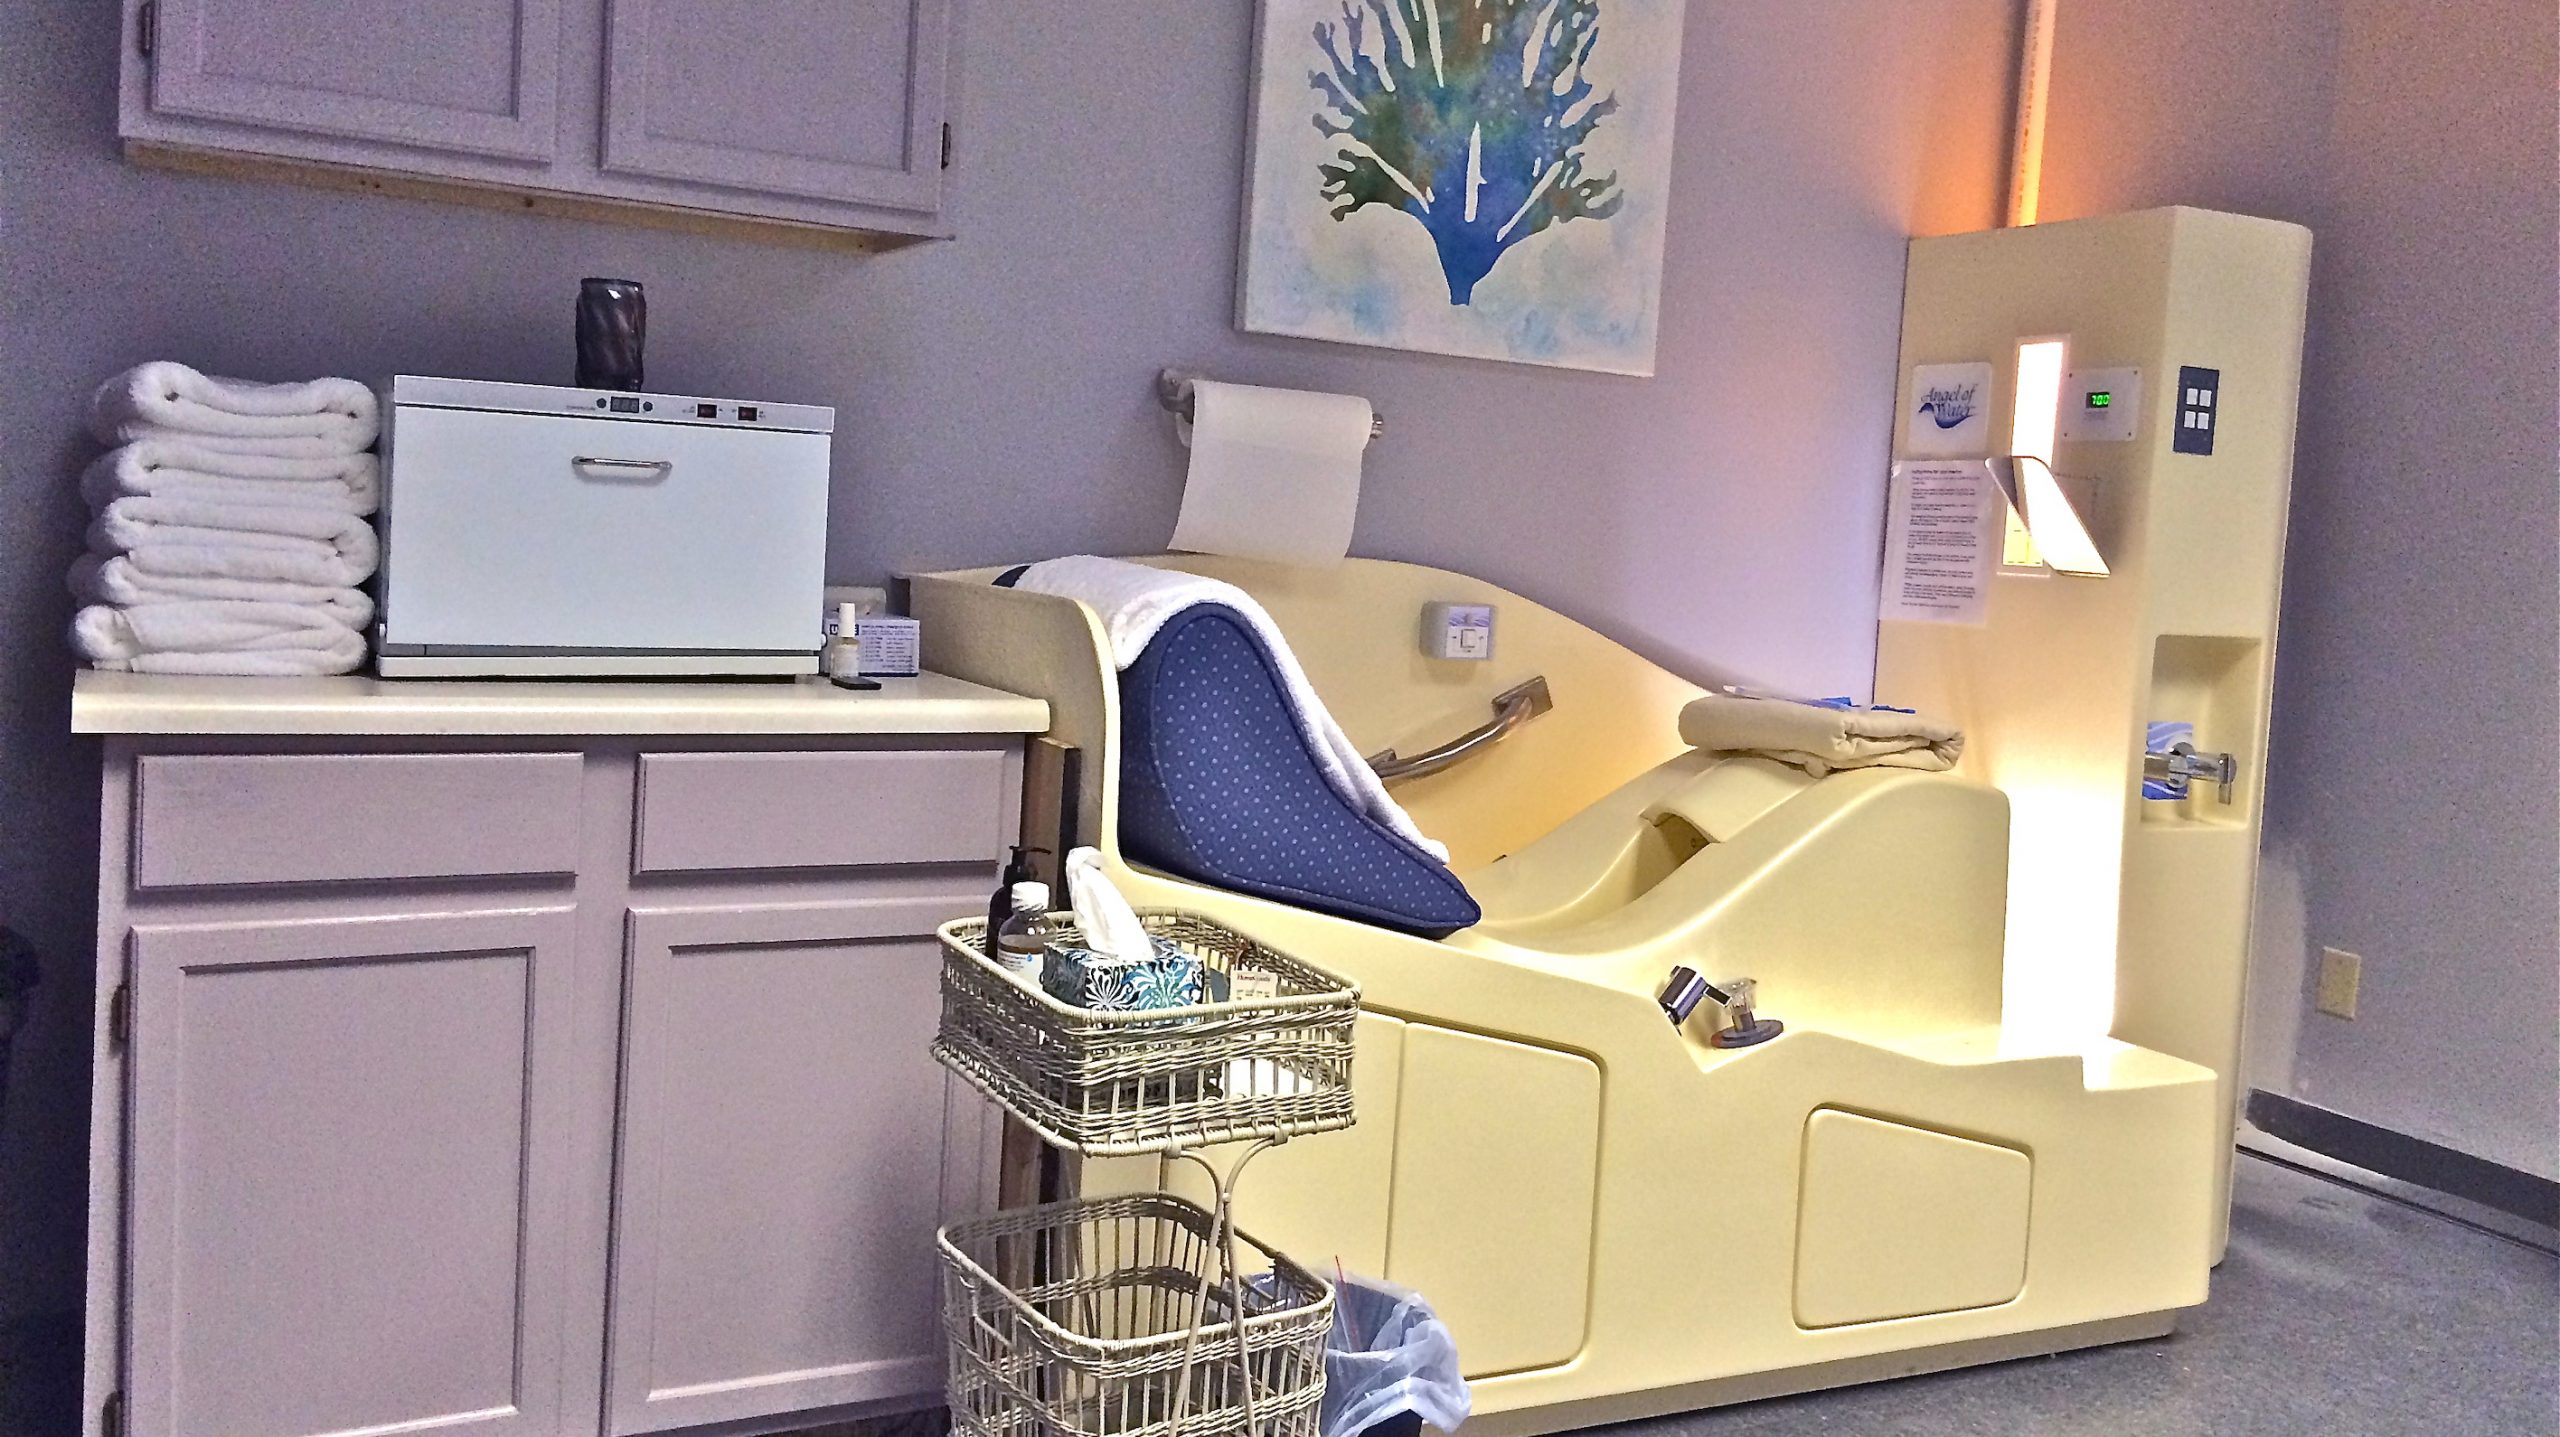 Colon Hydrotherapy Center in Scottsdale, Arizona for Alternative Cancer Treatment